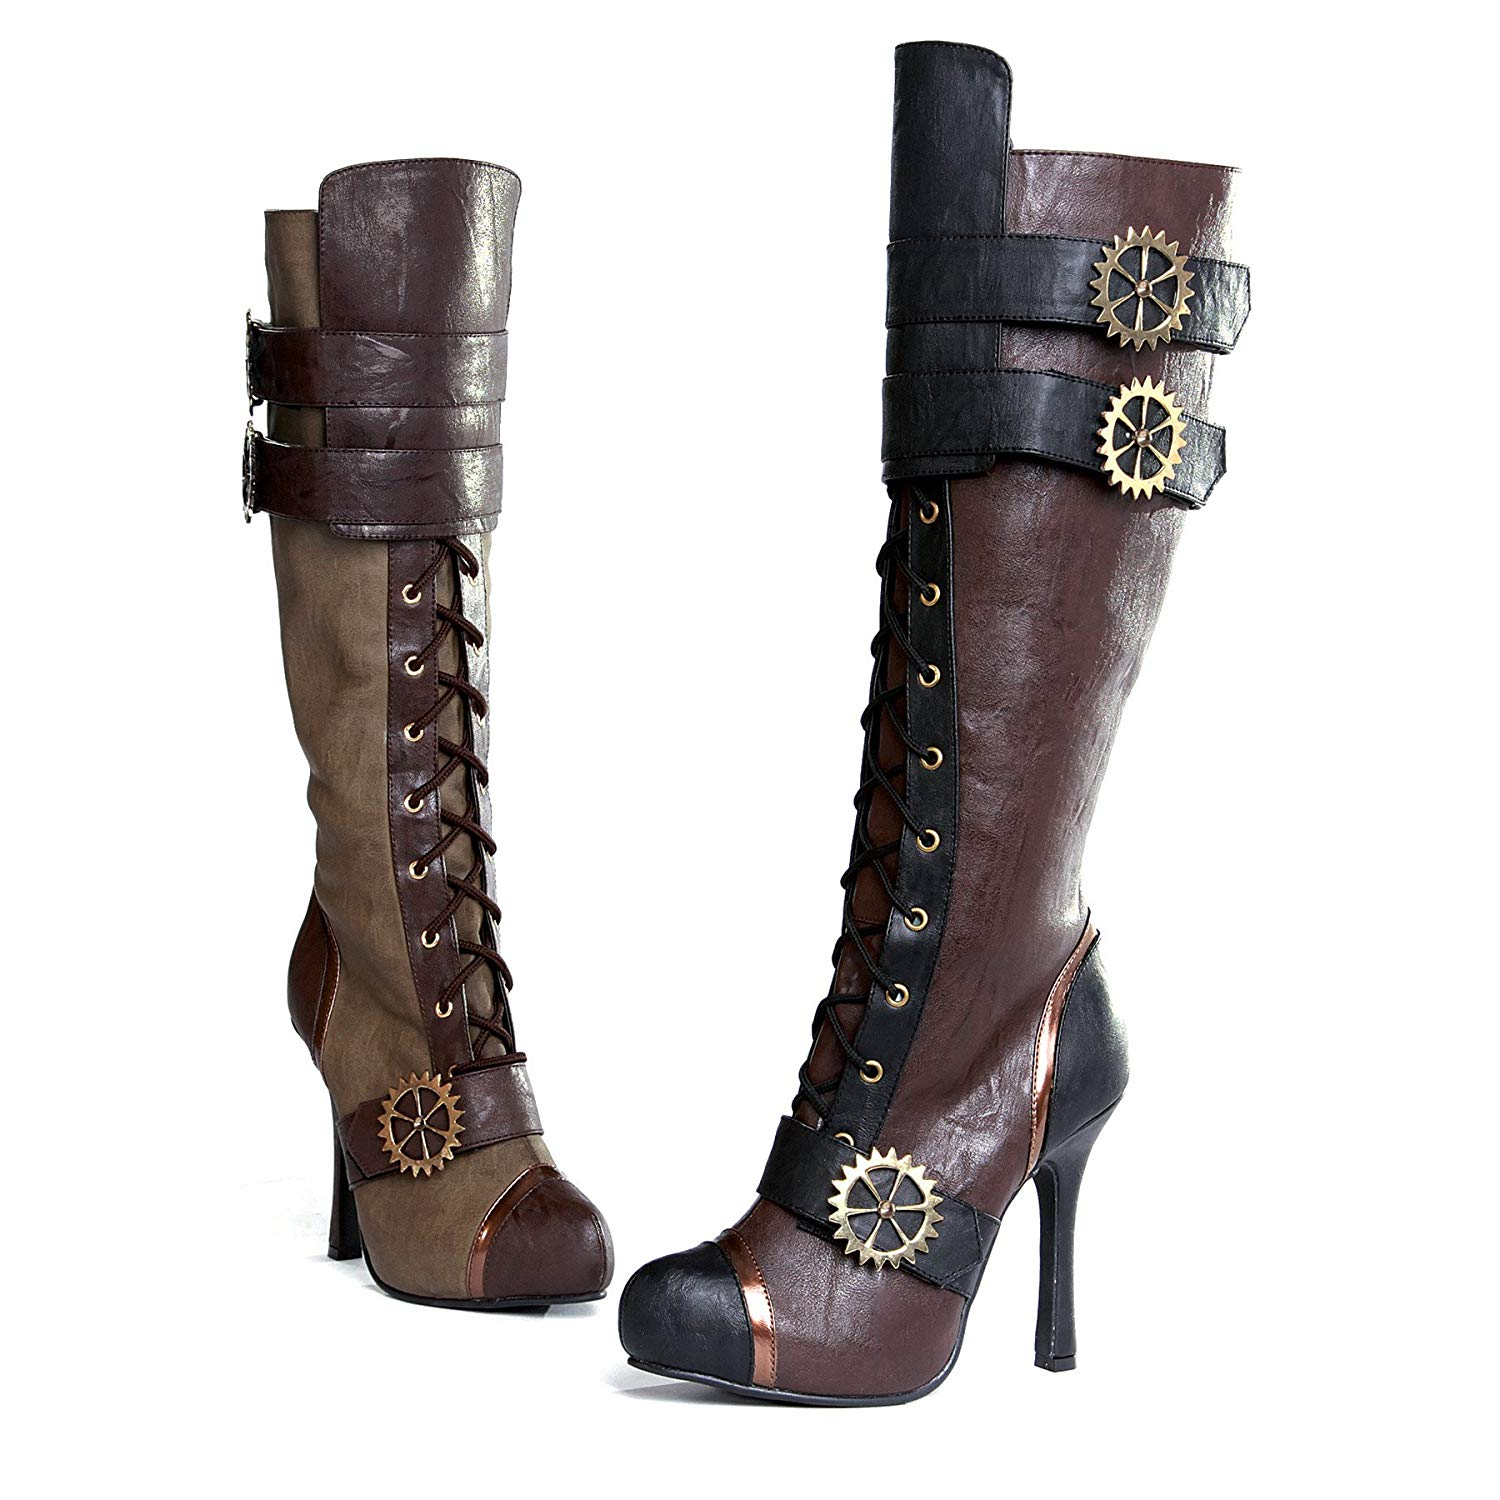 Women's Sexy Steampunk Lace-up High Heel Boots